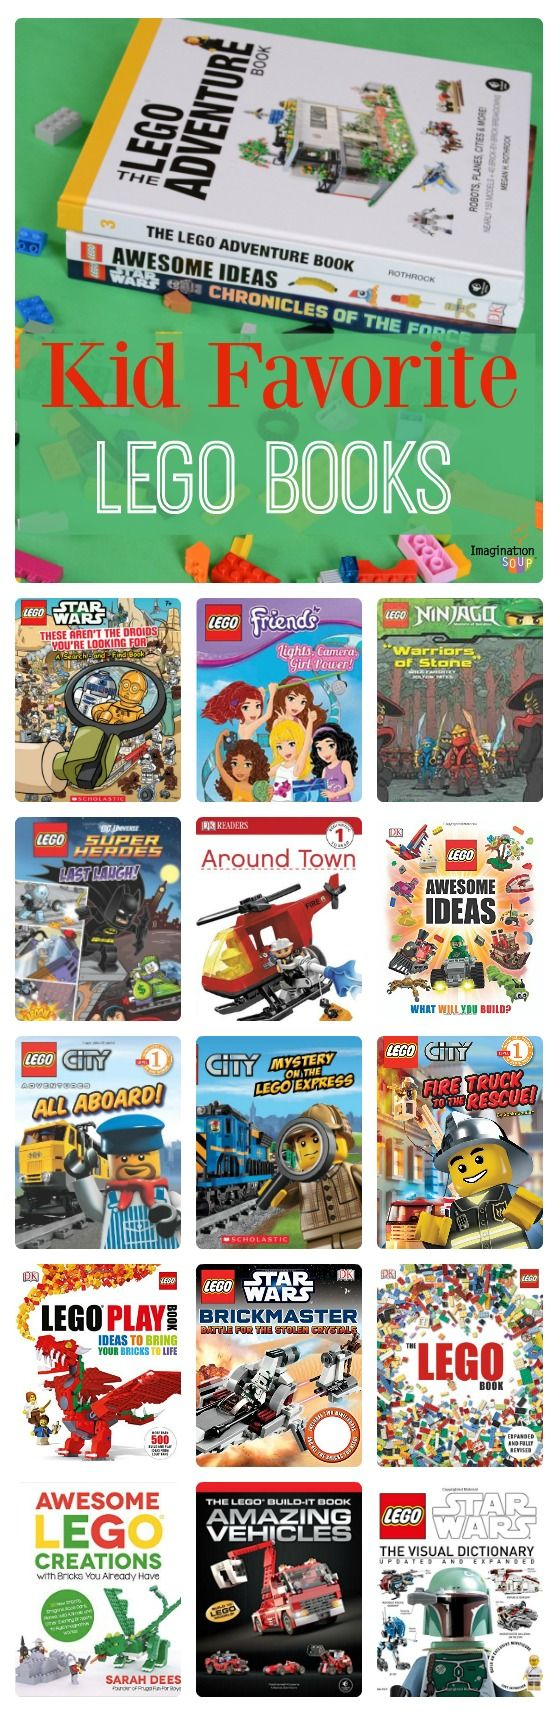 Kid-Favorite LEGO Books (picture books, early readers, nonfiction LEGO ideas)